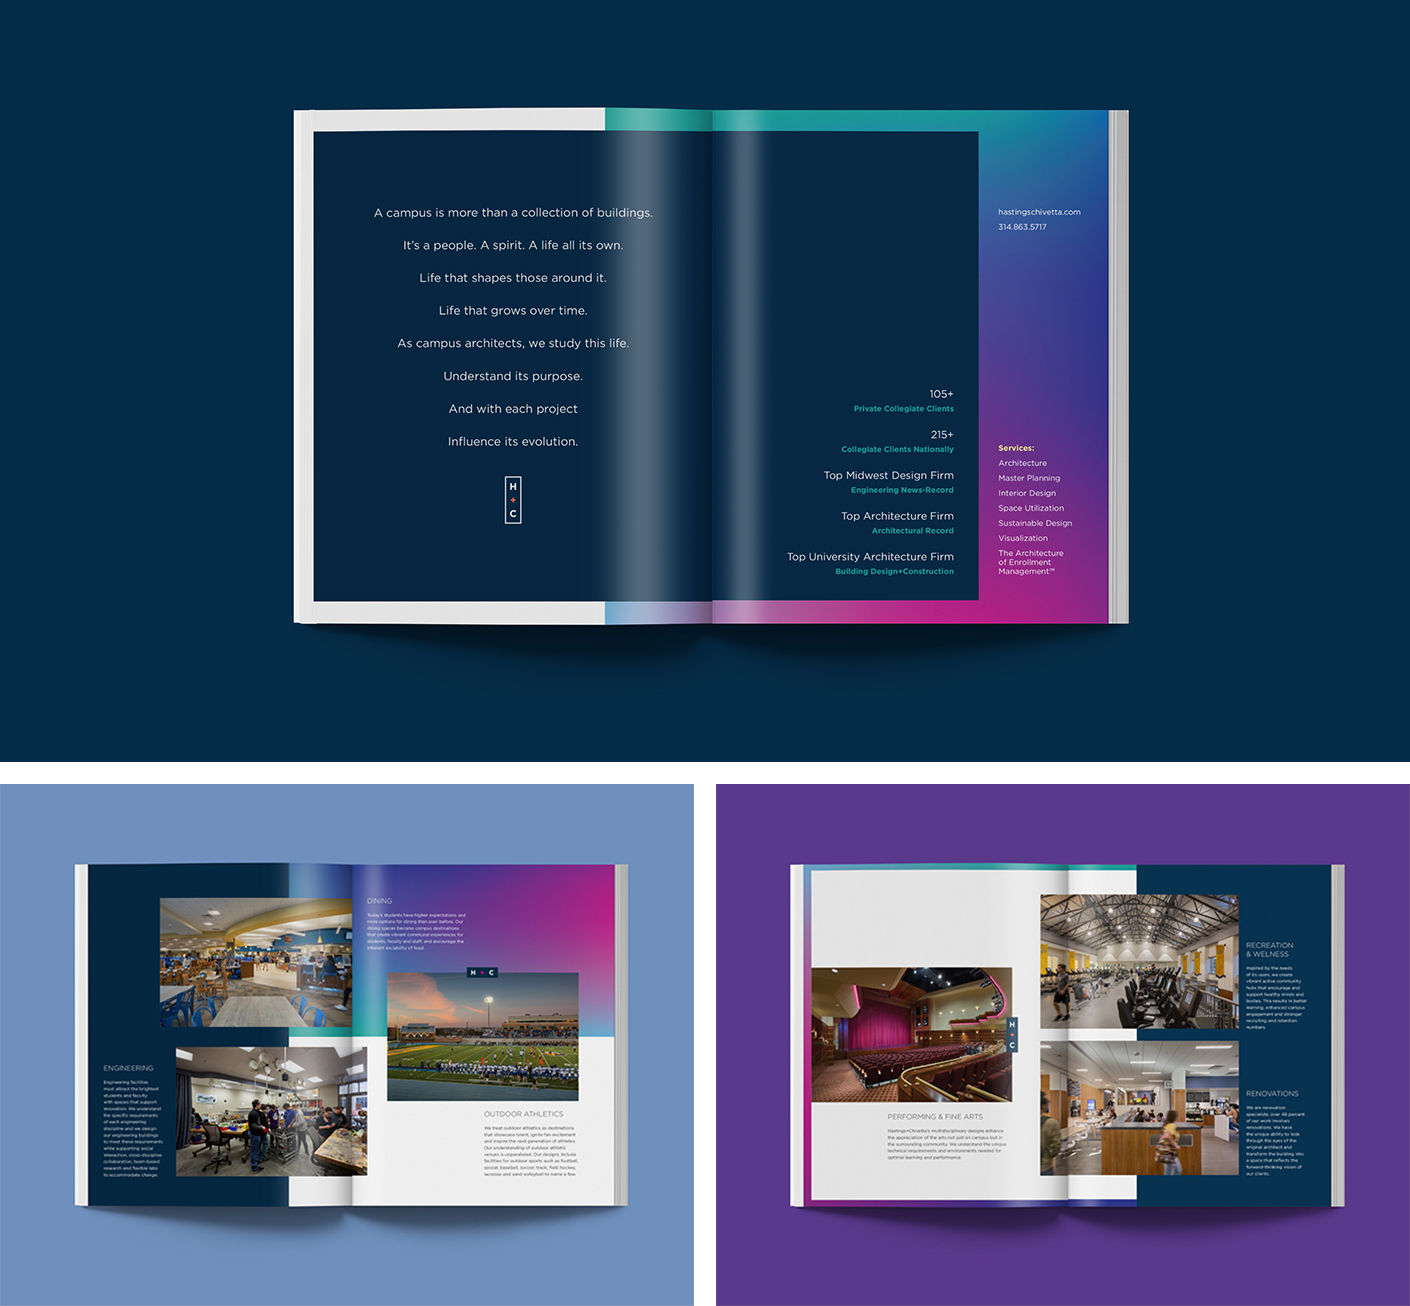 The redesigned Hastings + Chivetta brochure highlights the core services and project types that the firm takes on.